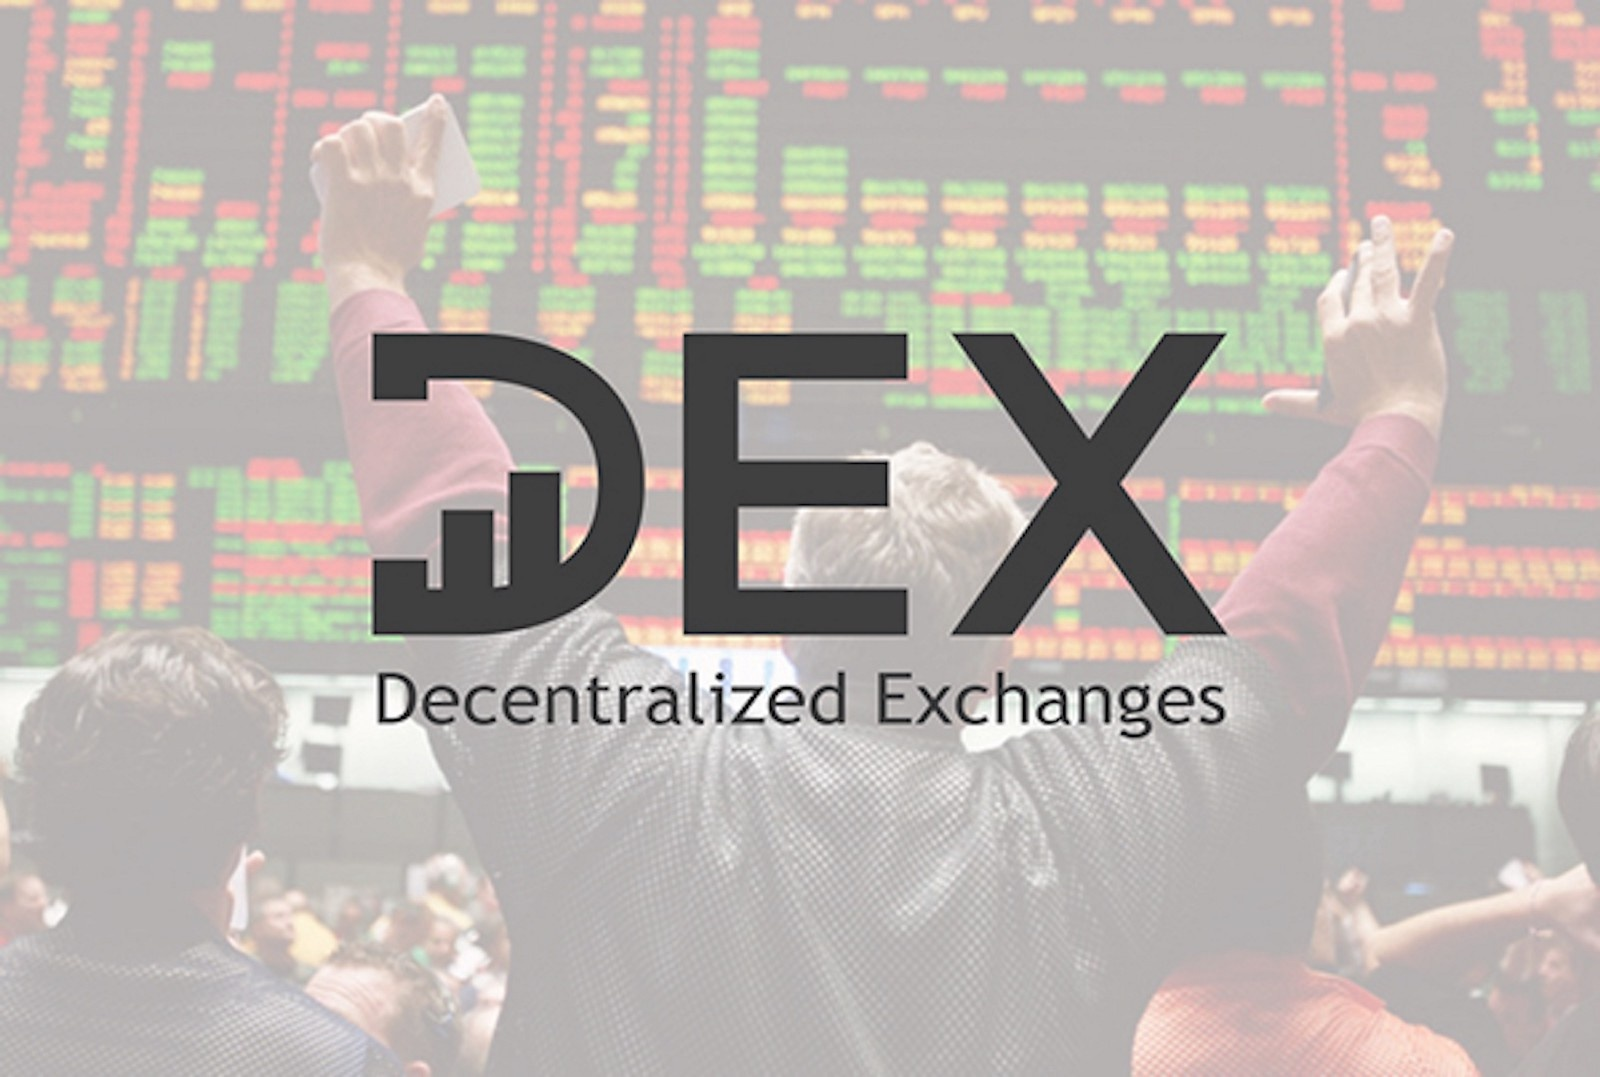 Where can I get a decentralized exchange script? - Quora